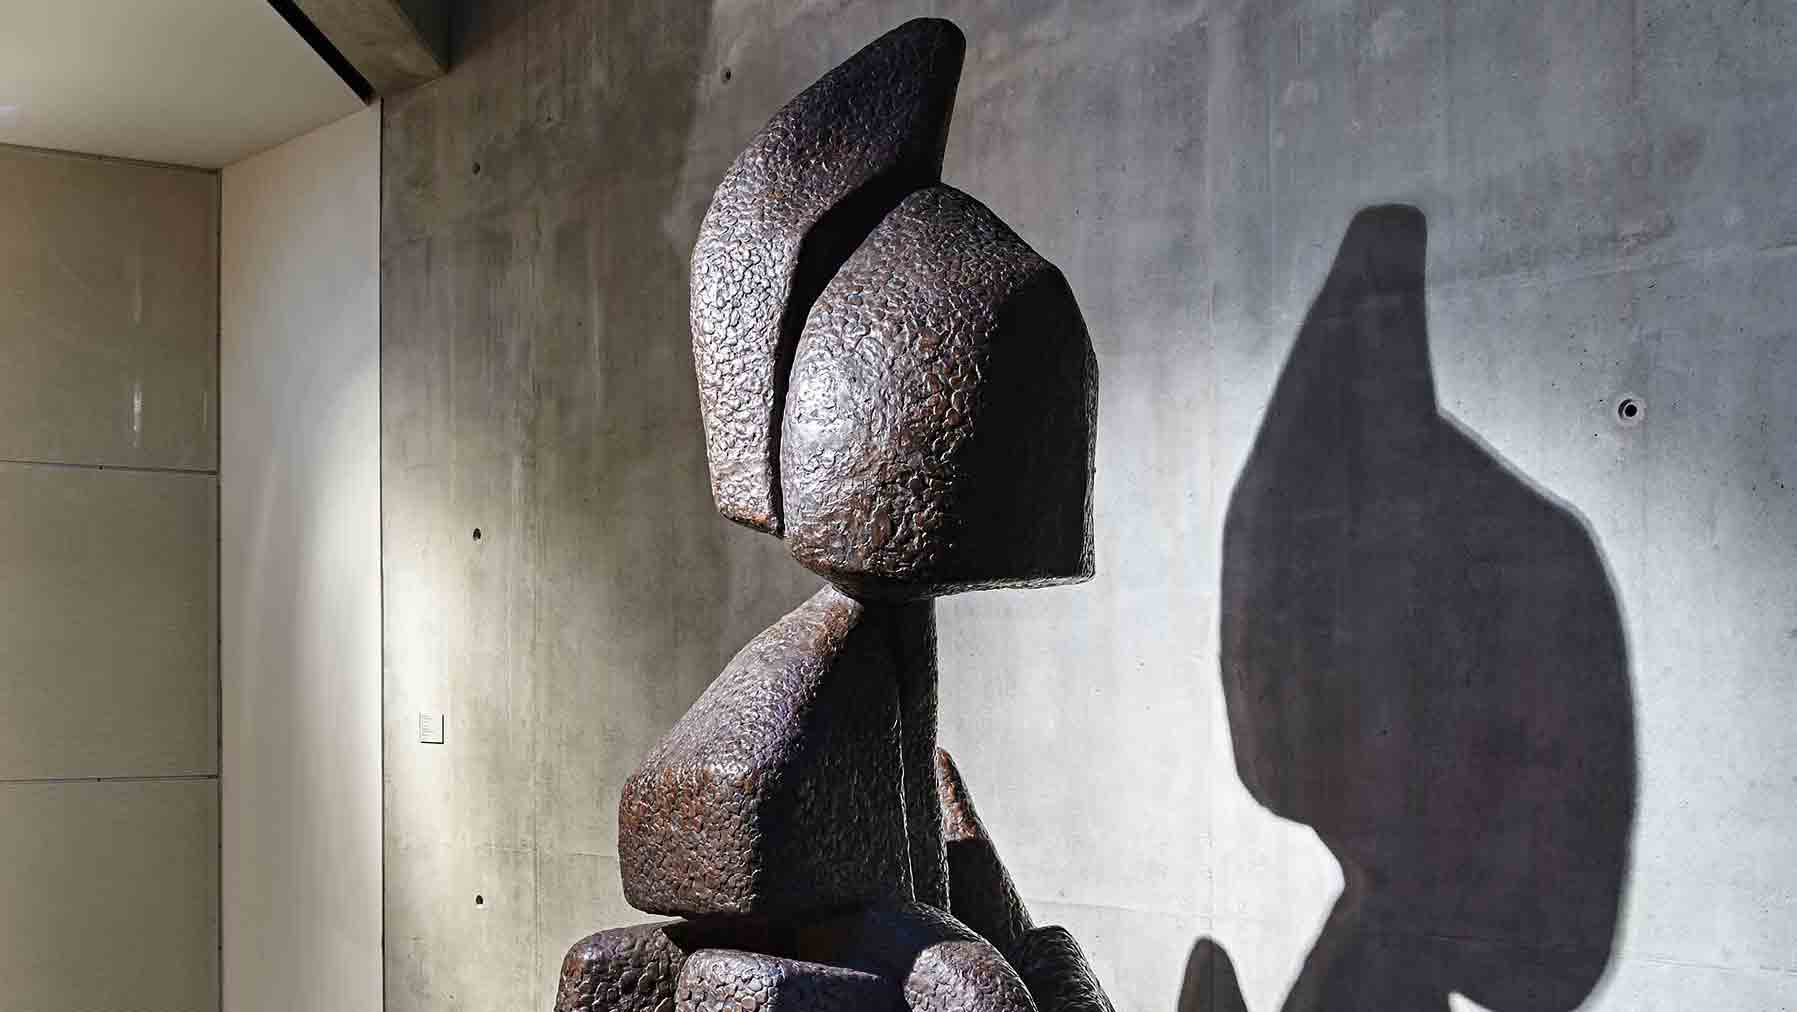 Abstract sculpture by Otto Freundlich